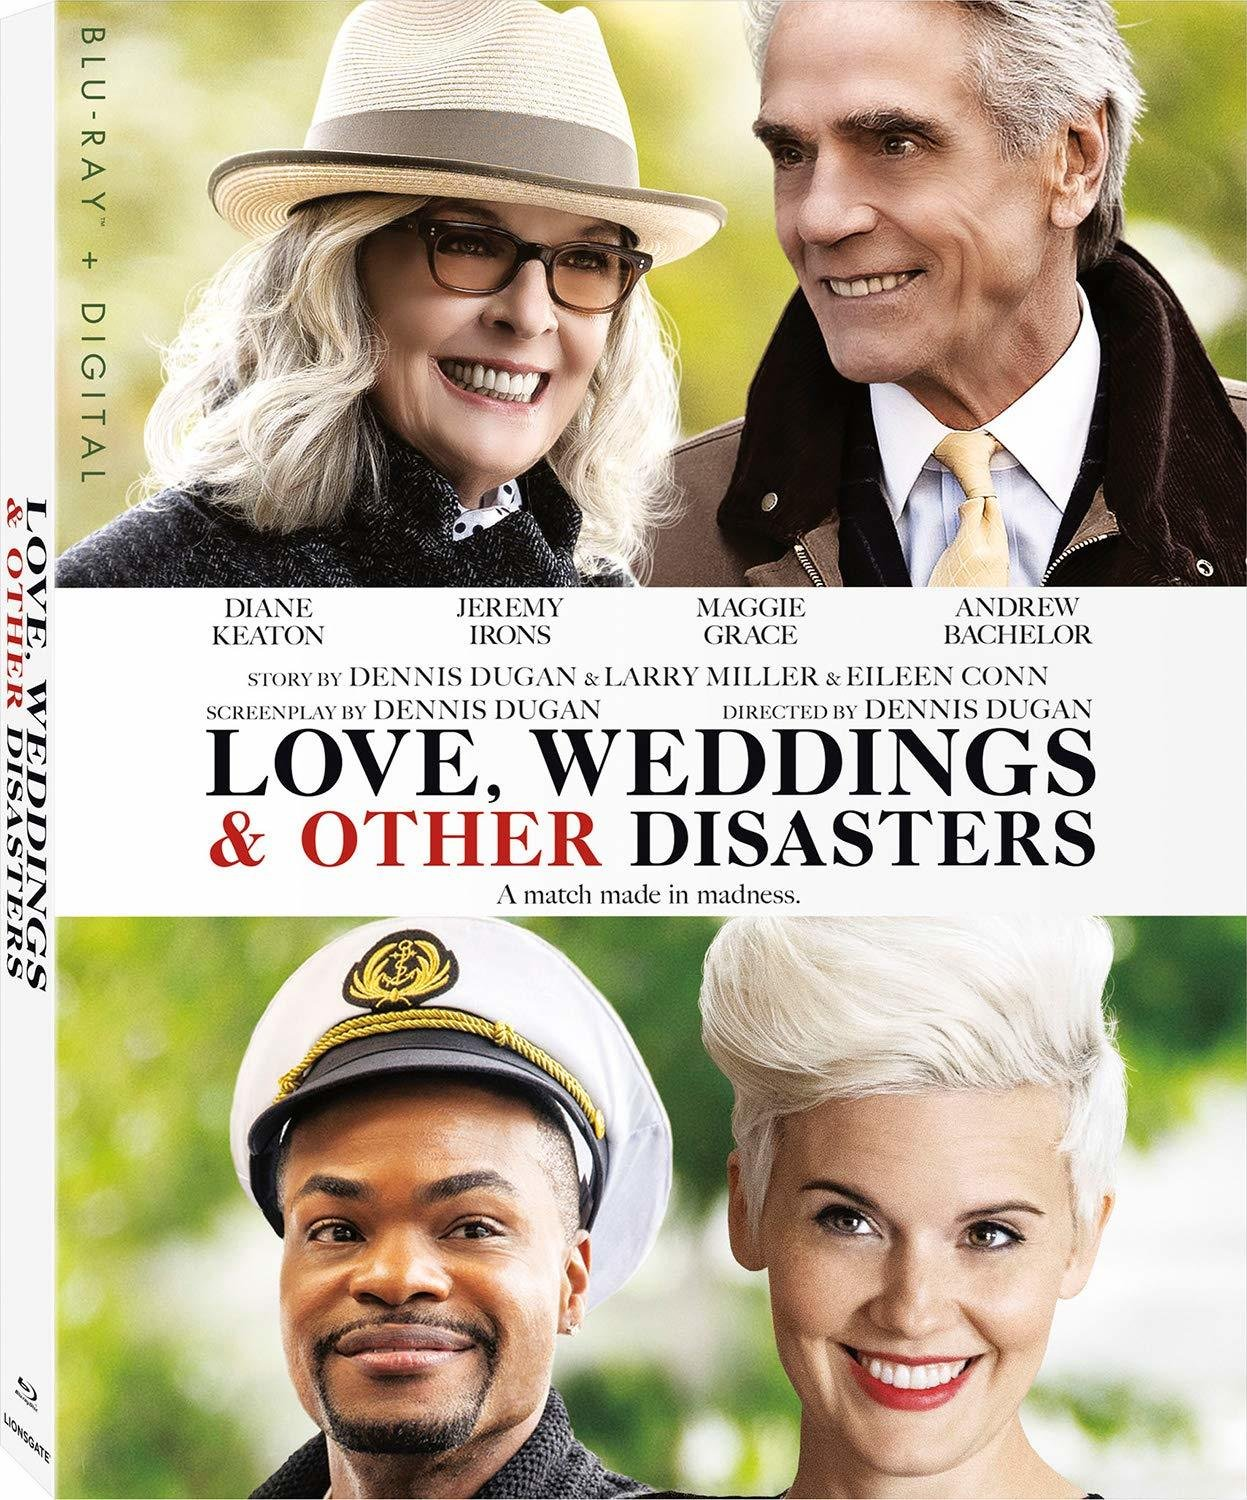 Love, Weddings and Other Disasters (2020) poster image